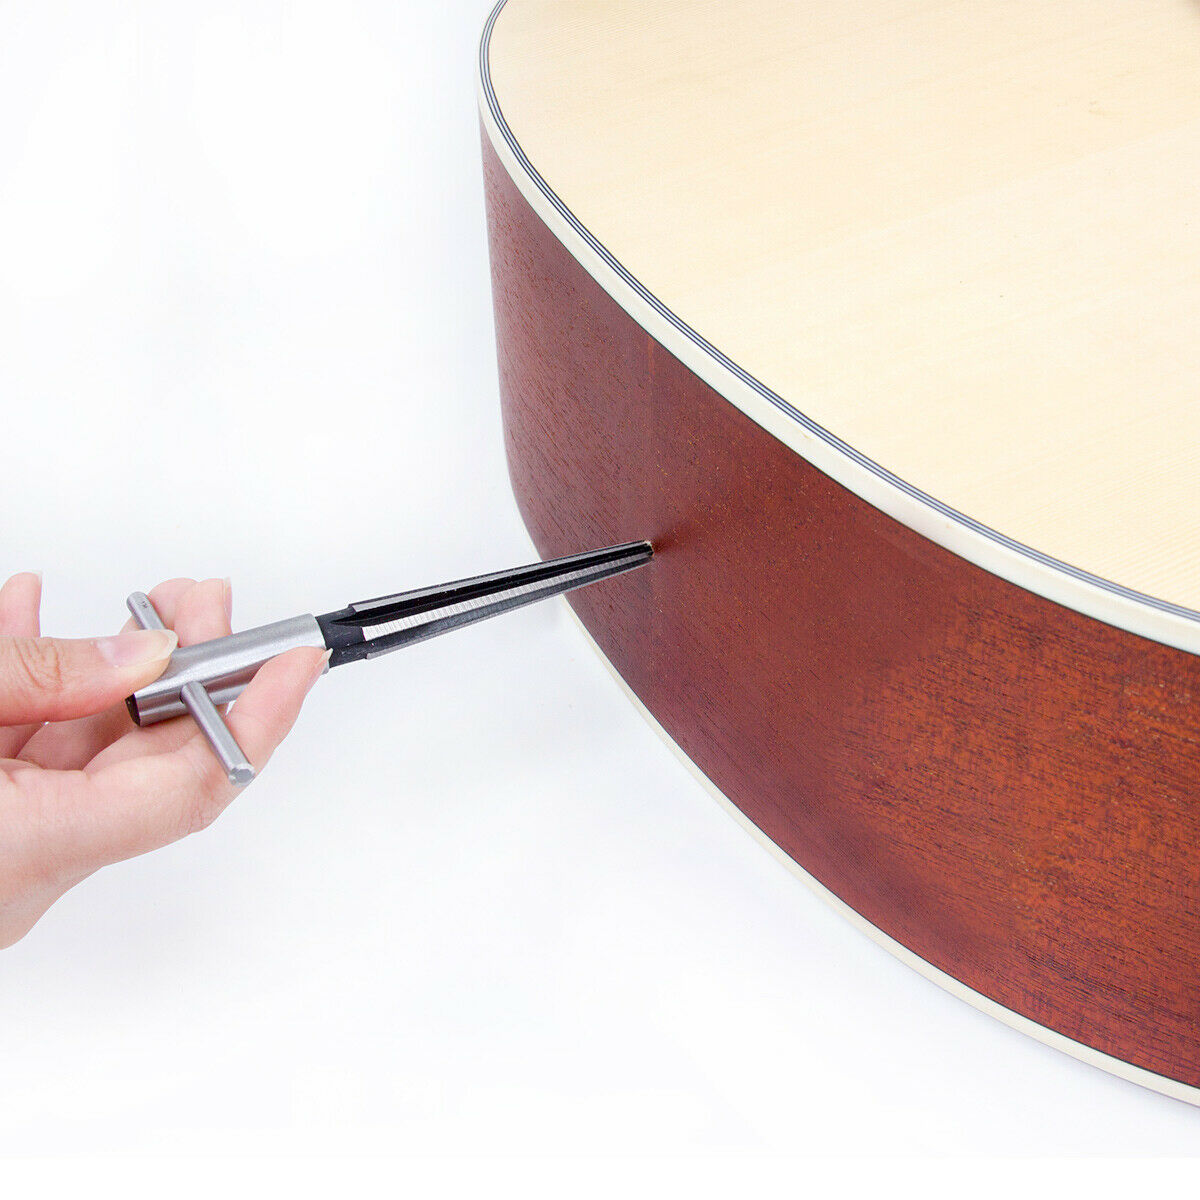 kmise guitar tapered reamer luthier hand wood tungsten for guitar repair parts 689994120835 ebay. Black Bedroom Furniture Sets. Home Design Ideas